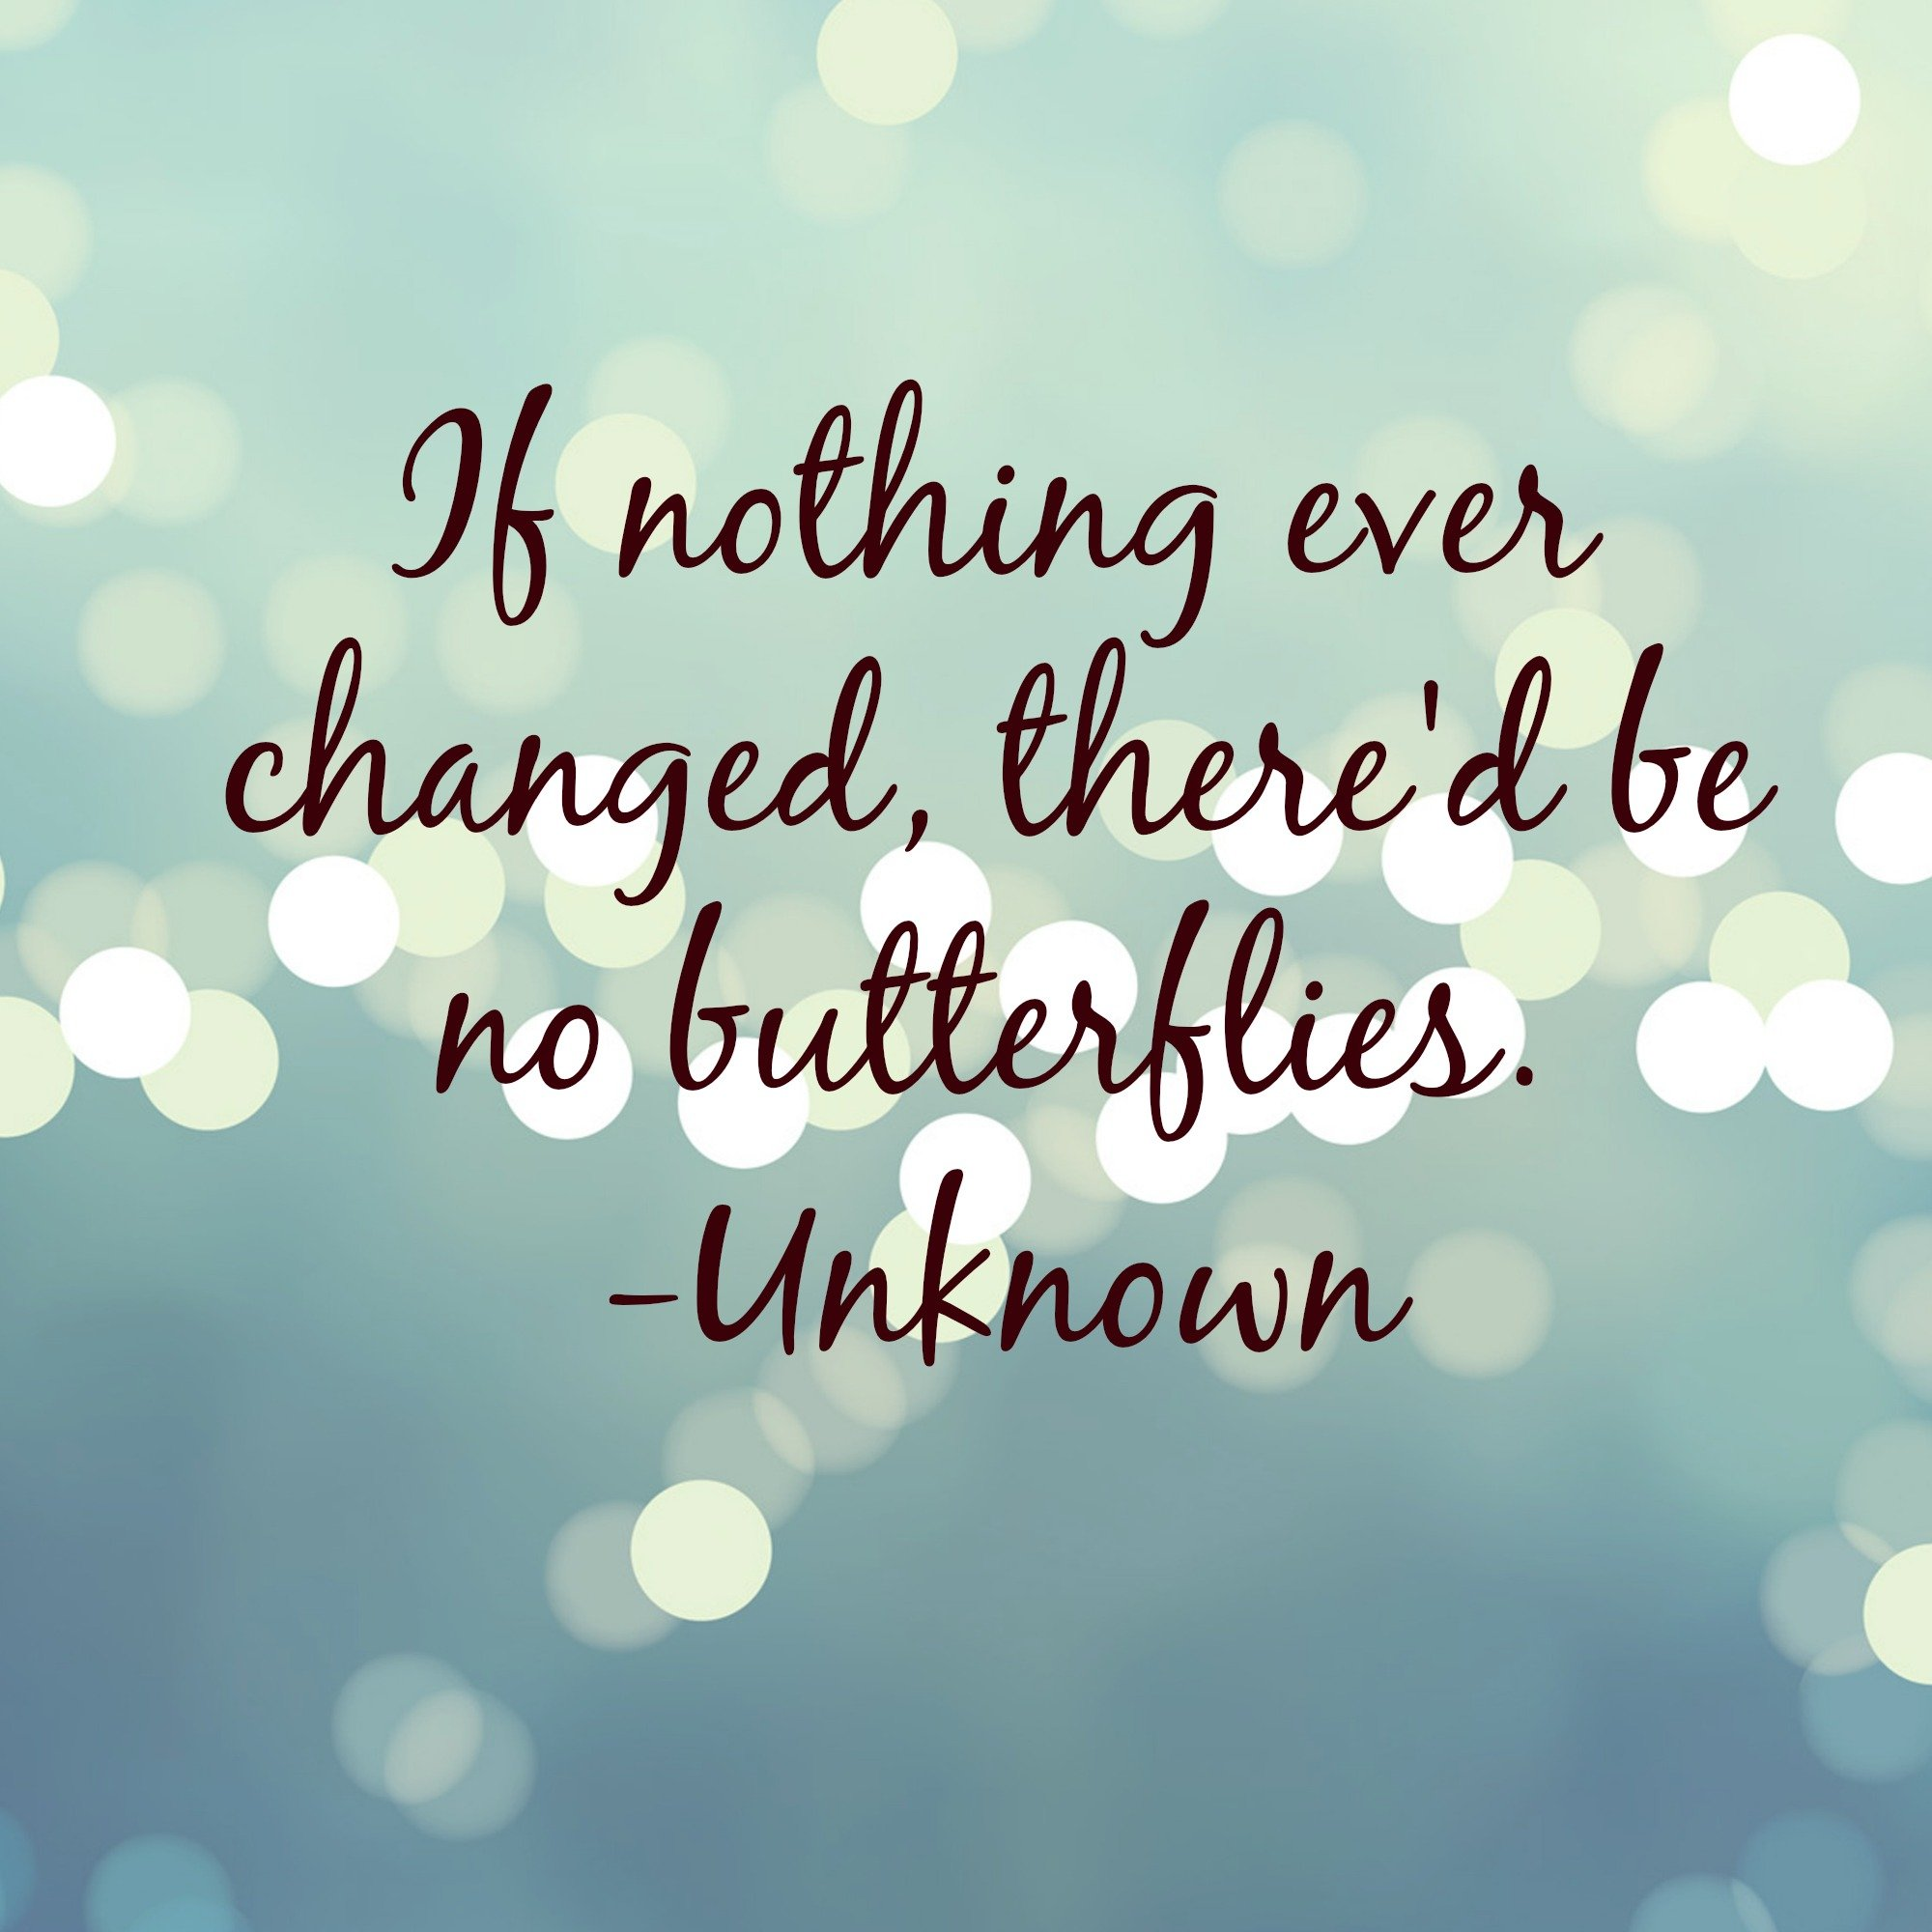 Quotes On Change: Quotes On Change And Growth. QuotesGram